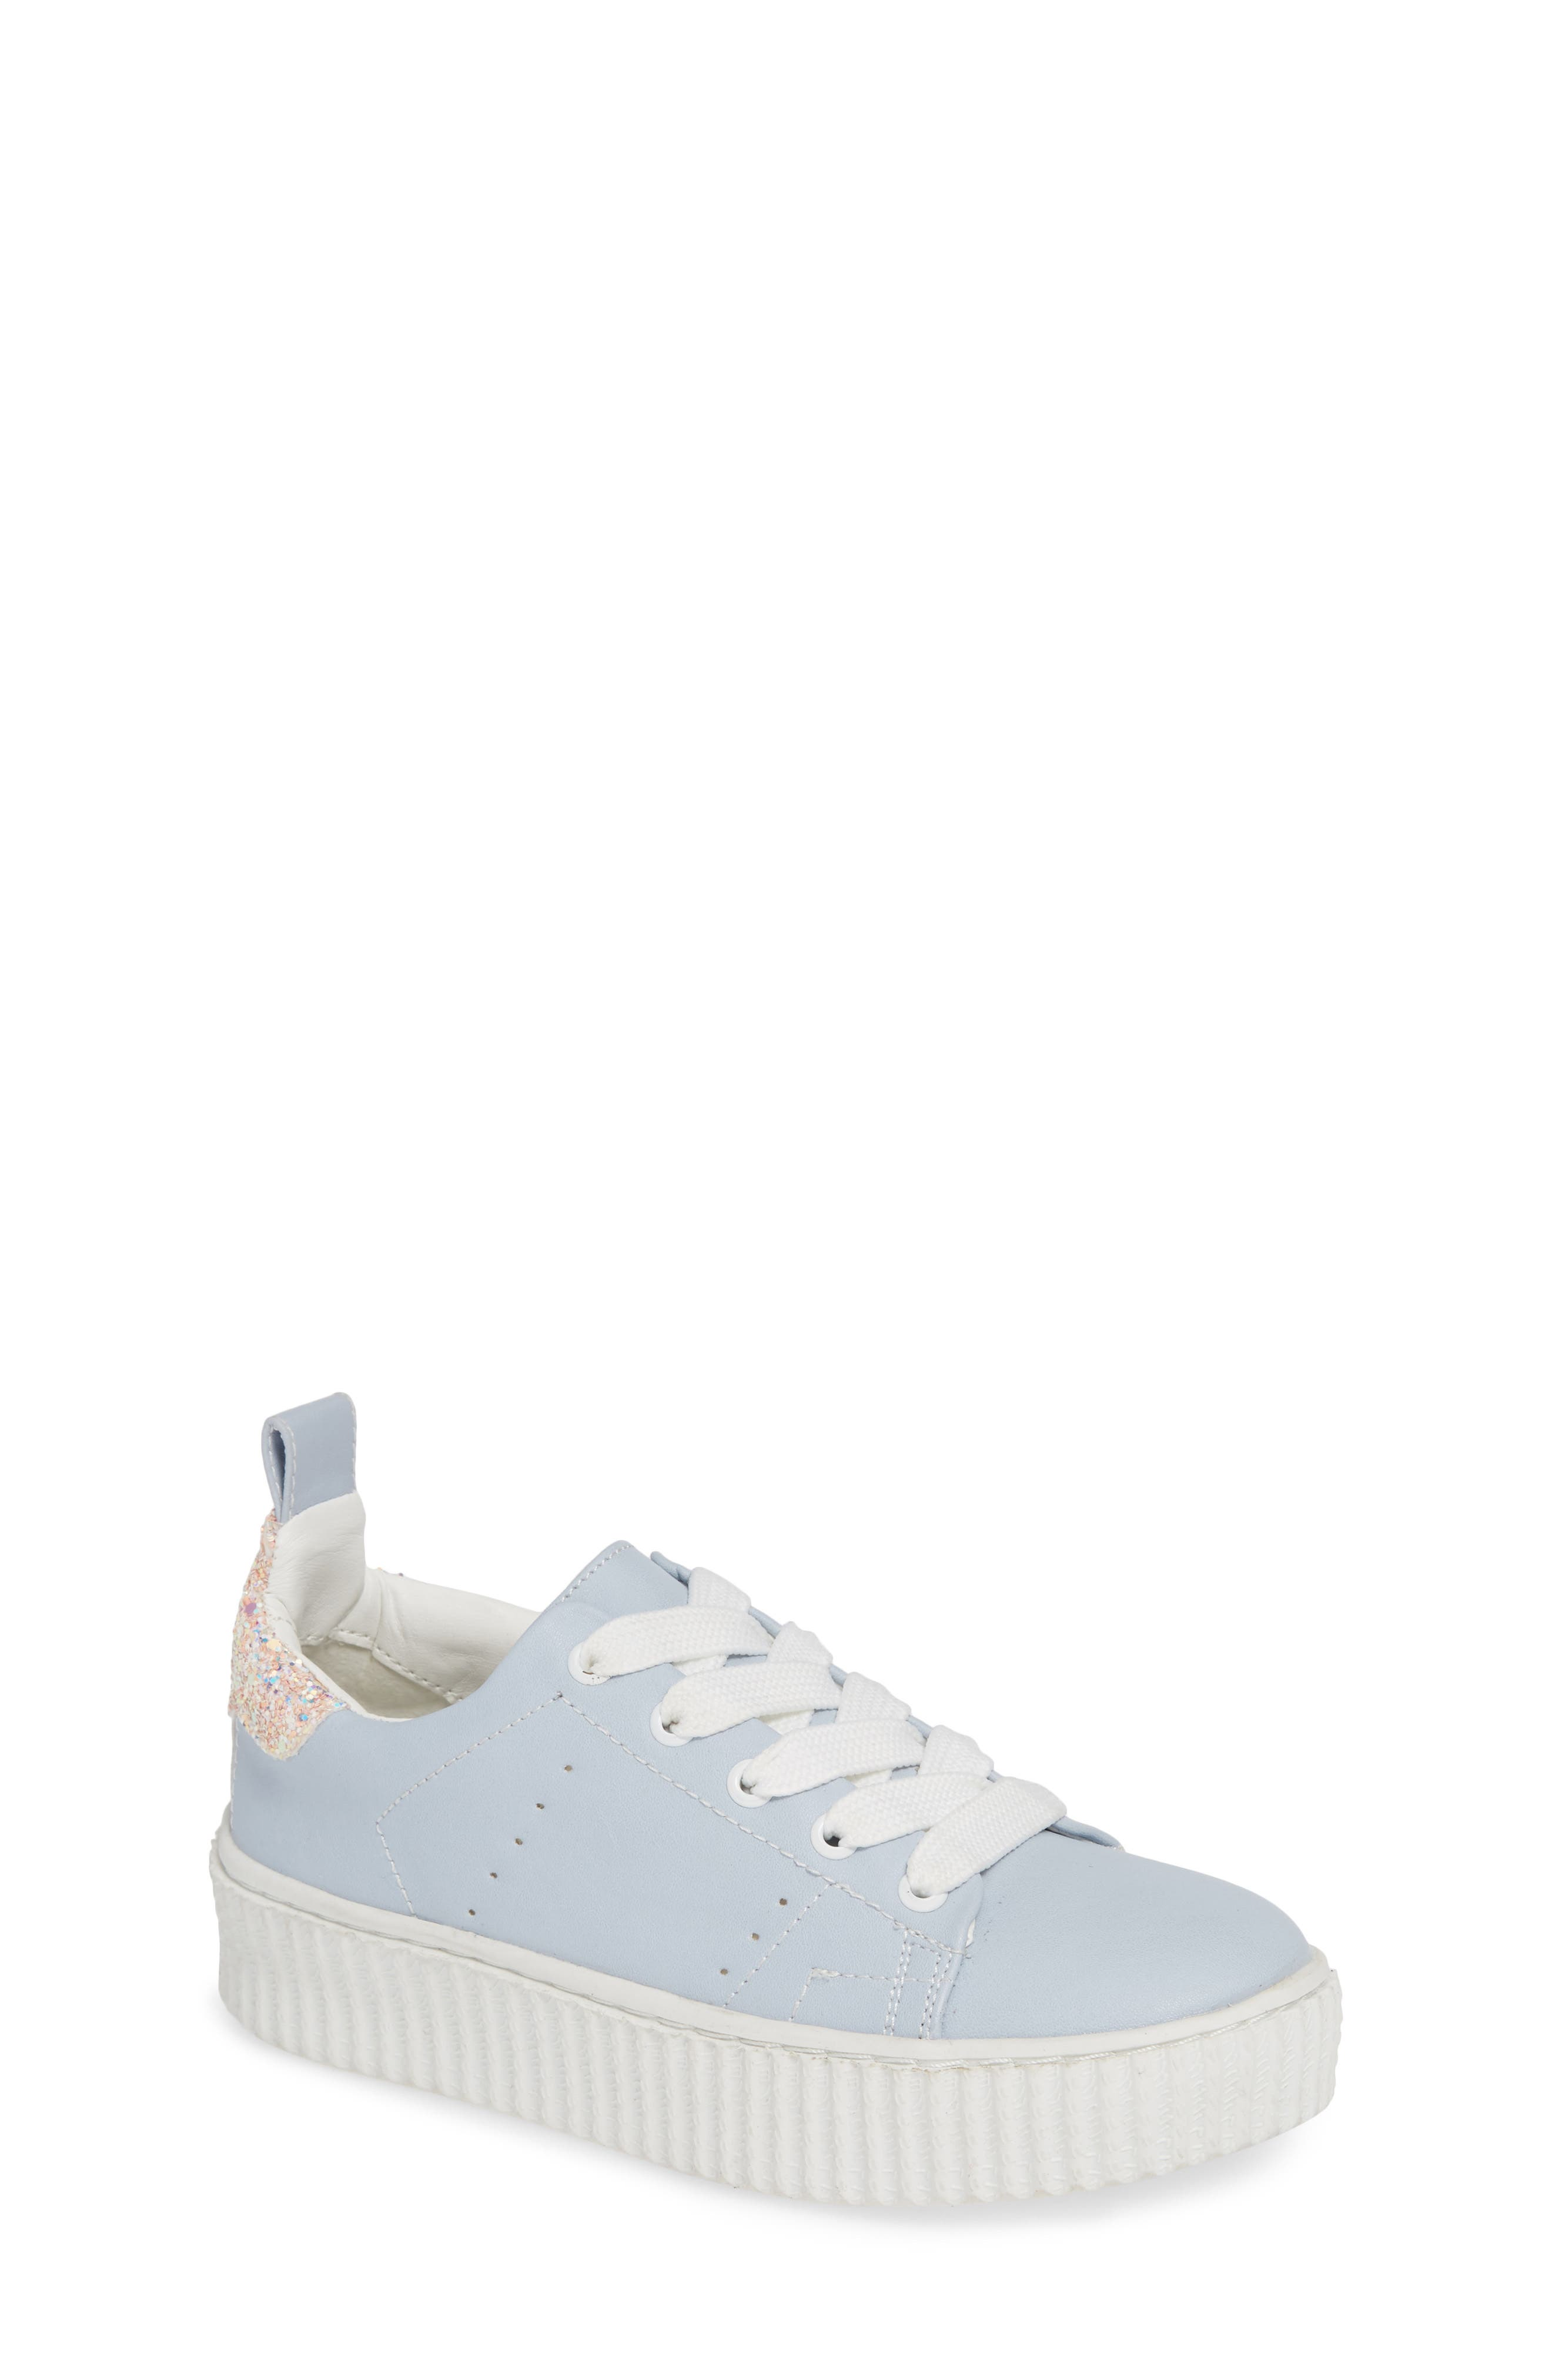 Wren Glitter Heel Sneaker,                         Main,                         color, LIGHT BLUE